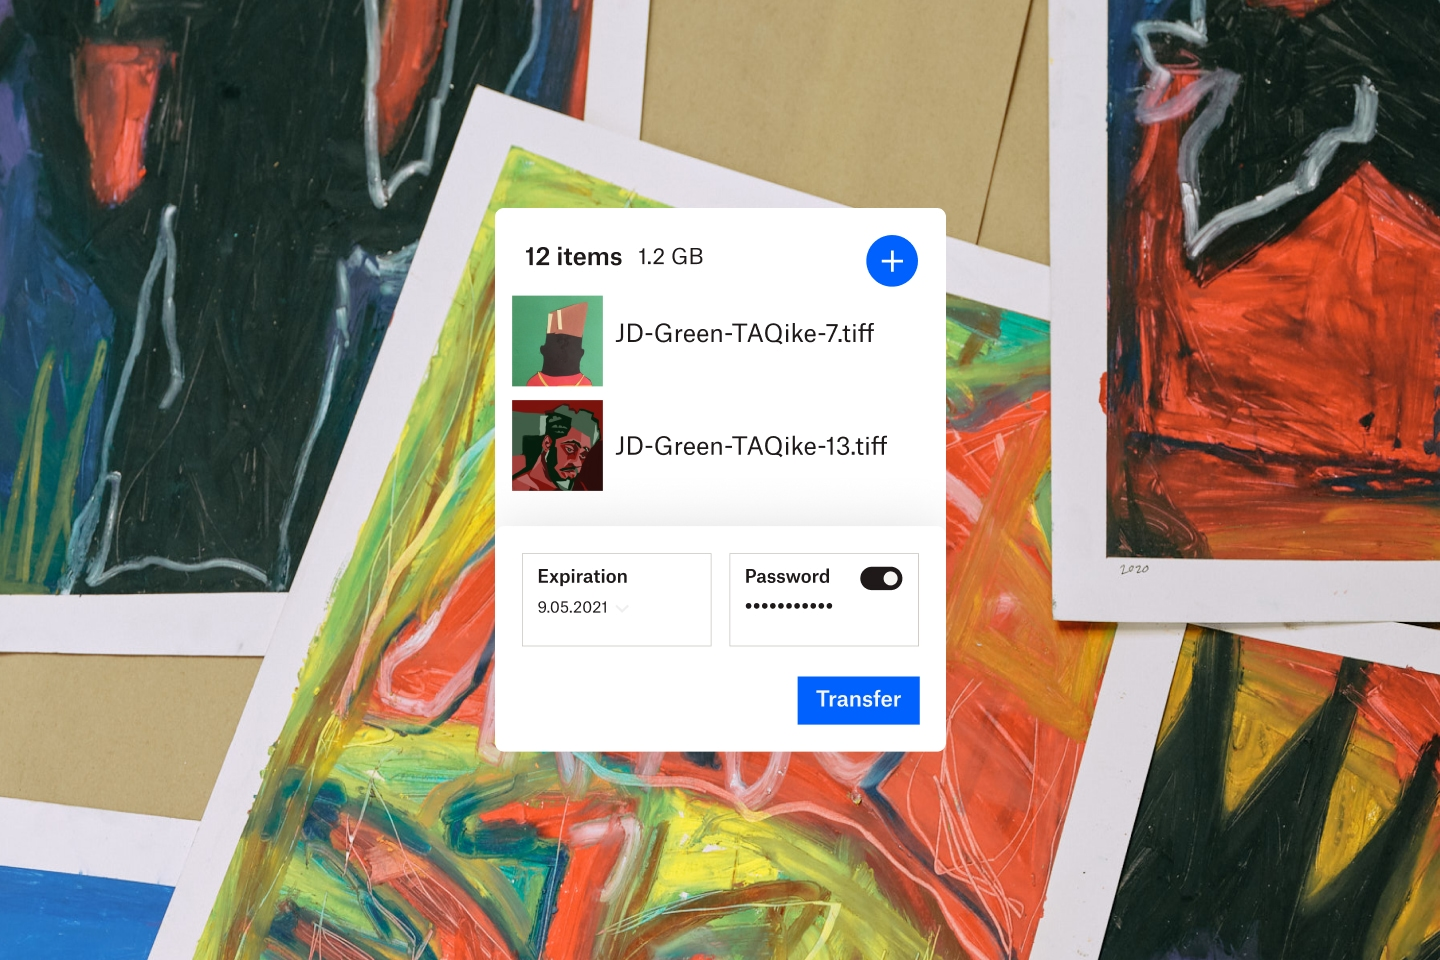 Two photos are ready to be transferred with an expiration date and password protection in Dropbox.